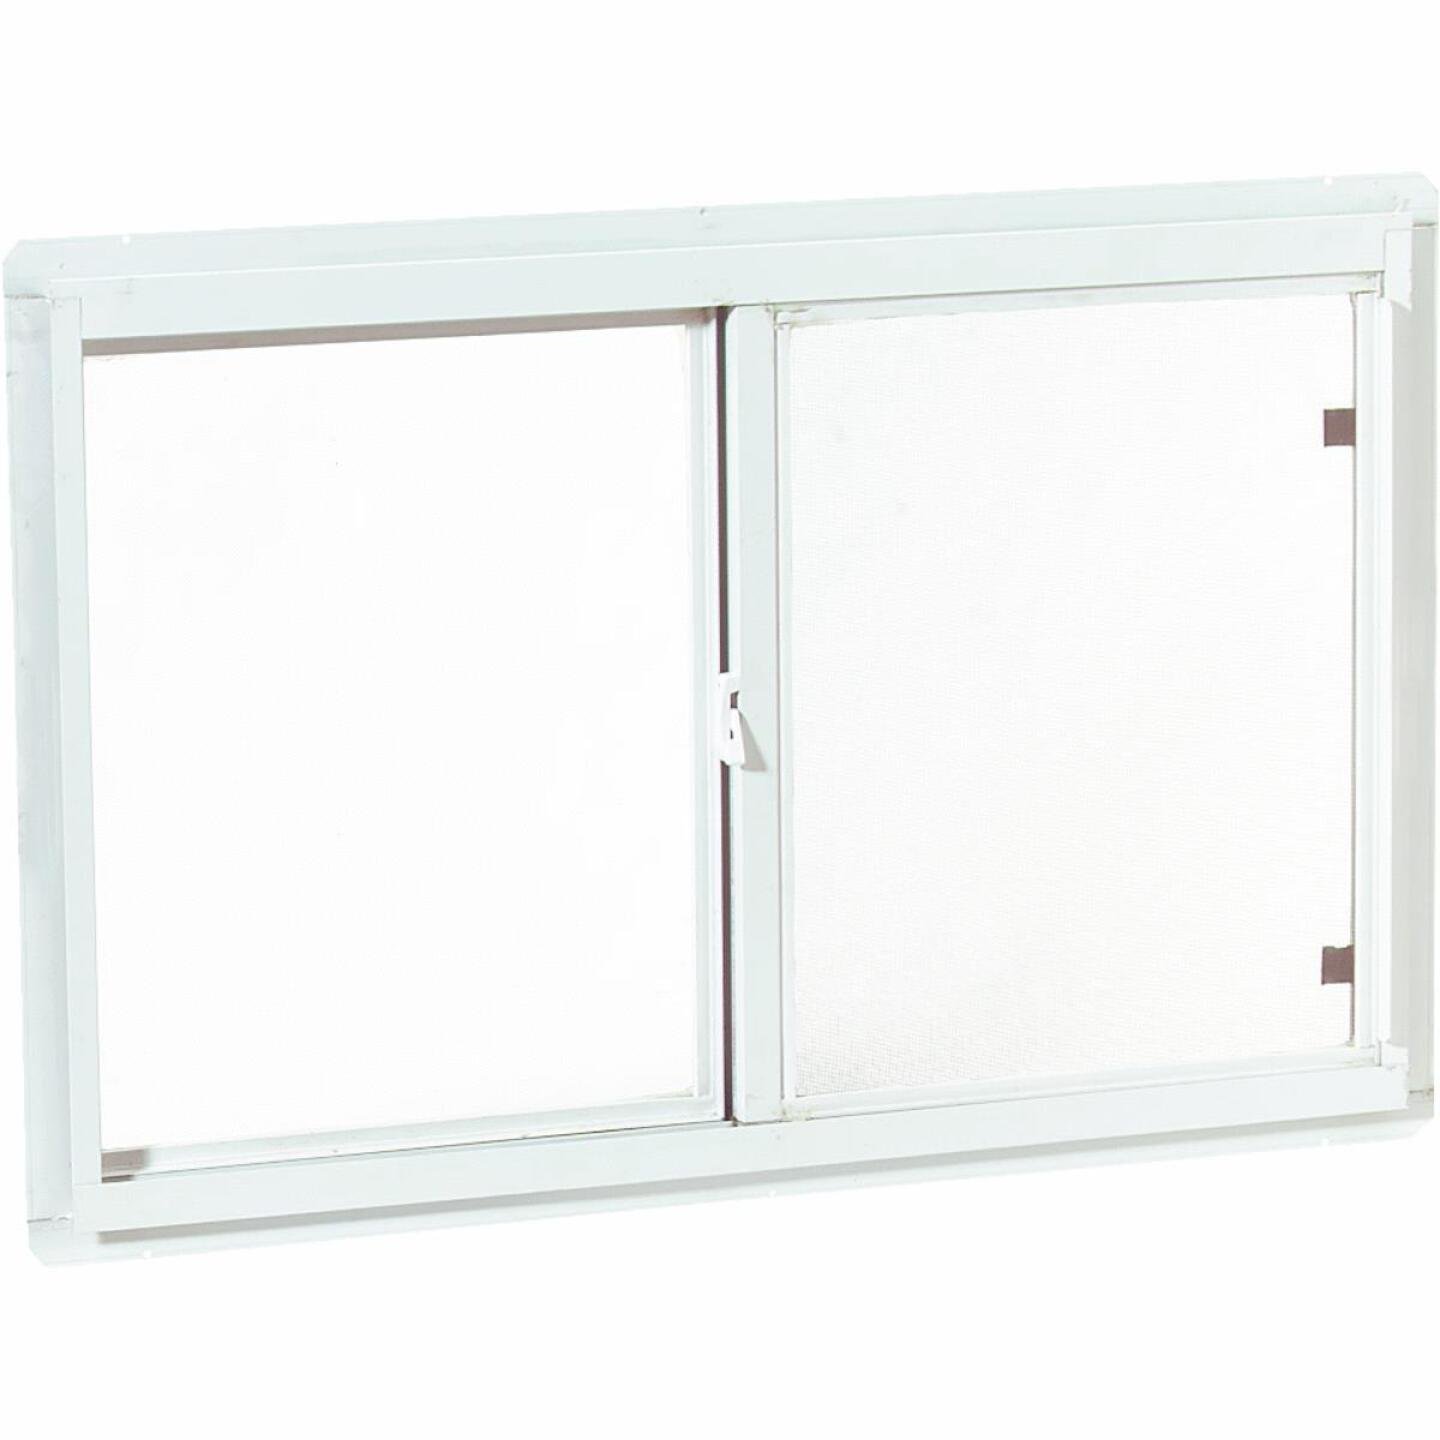 Croft Series 70 47 In. W. x 23 In. H. White Aluminum Sliding Window with Screen Image 1